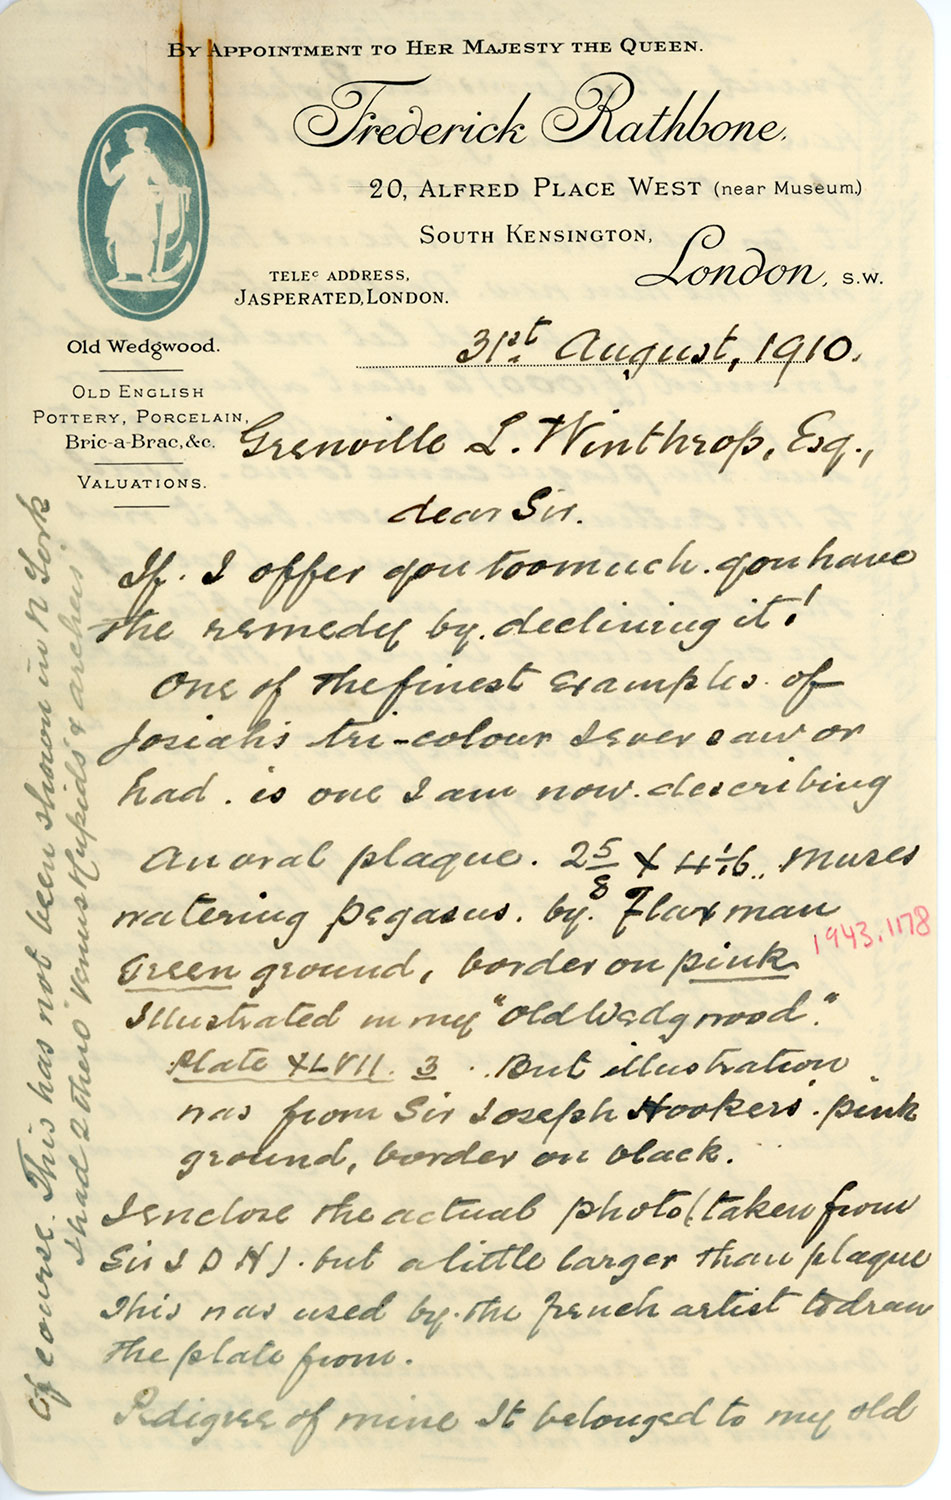 A handwritten letter, dated 31 August 1910, is addressed to Grenville L. Winthrop, Esq., with the letterhead of Frederick Rathbone at top.